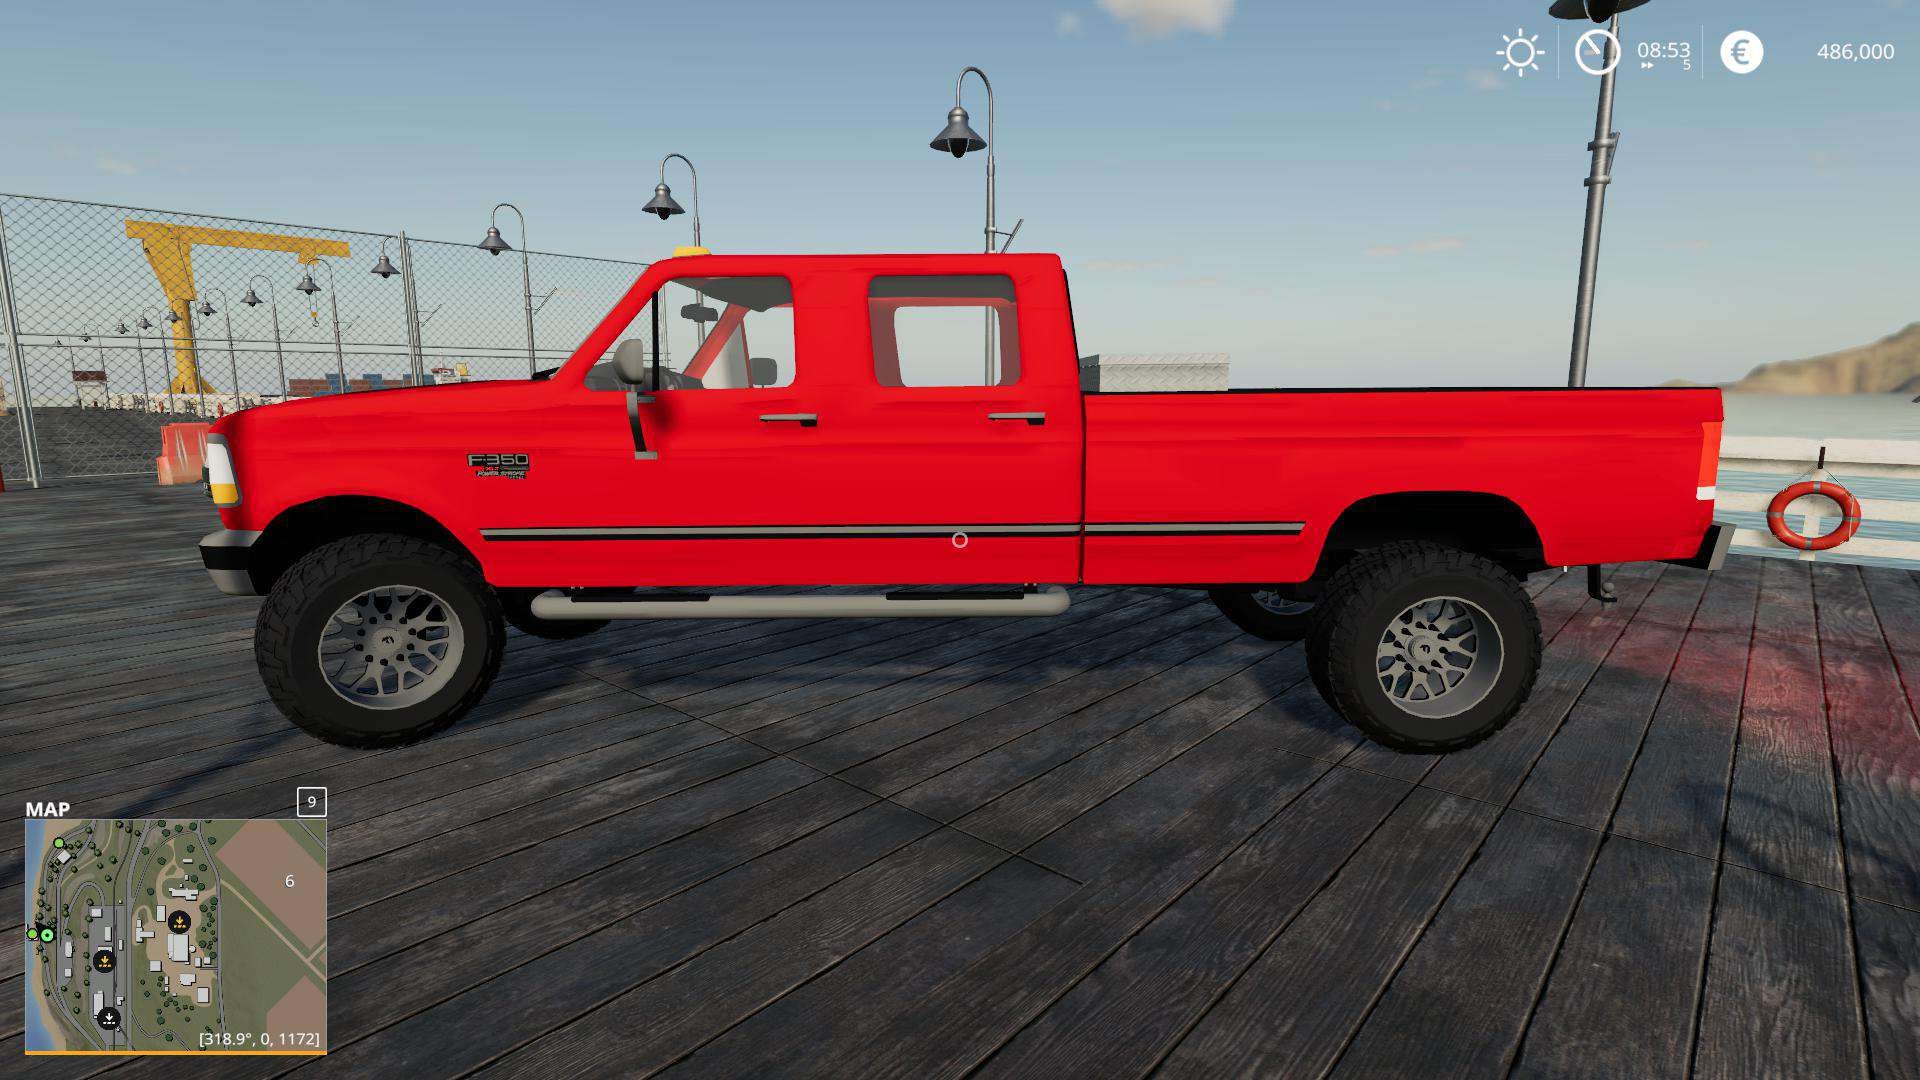 Мод авто Ford f350 1996 v1.0.0.0 Farming Simulator 2019